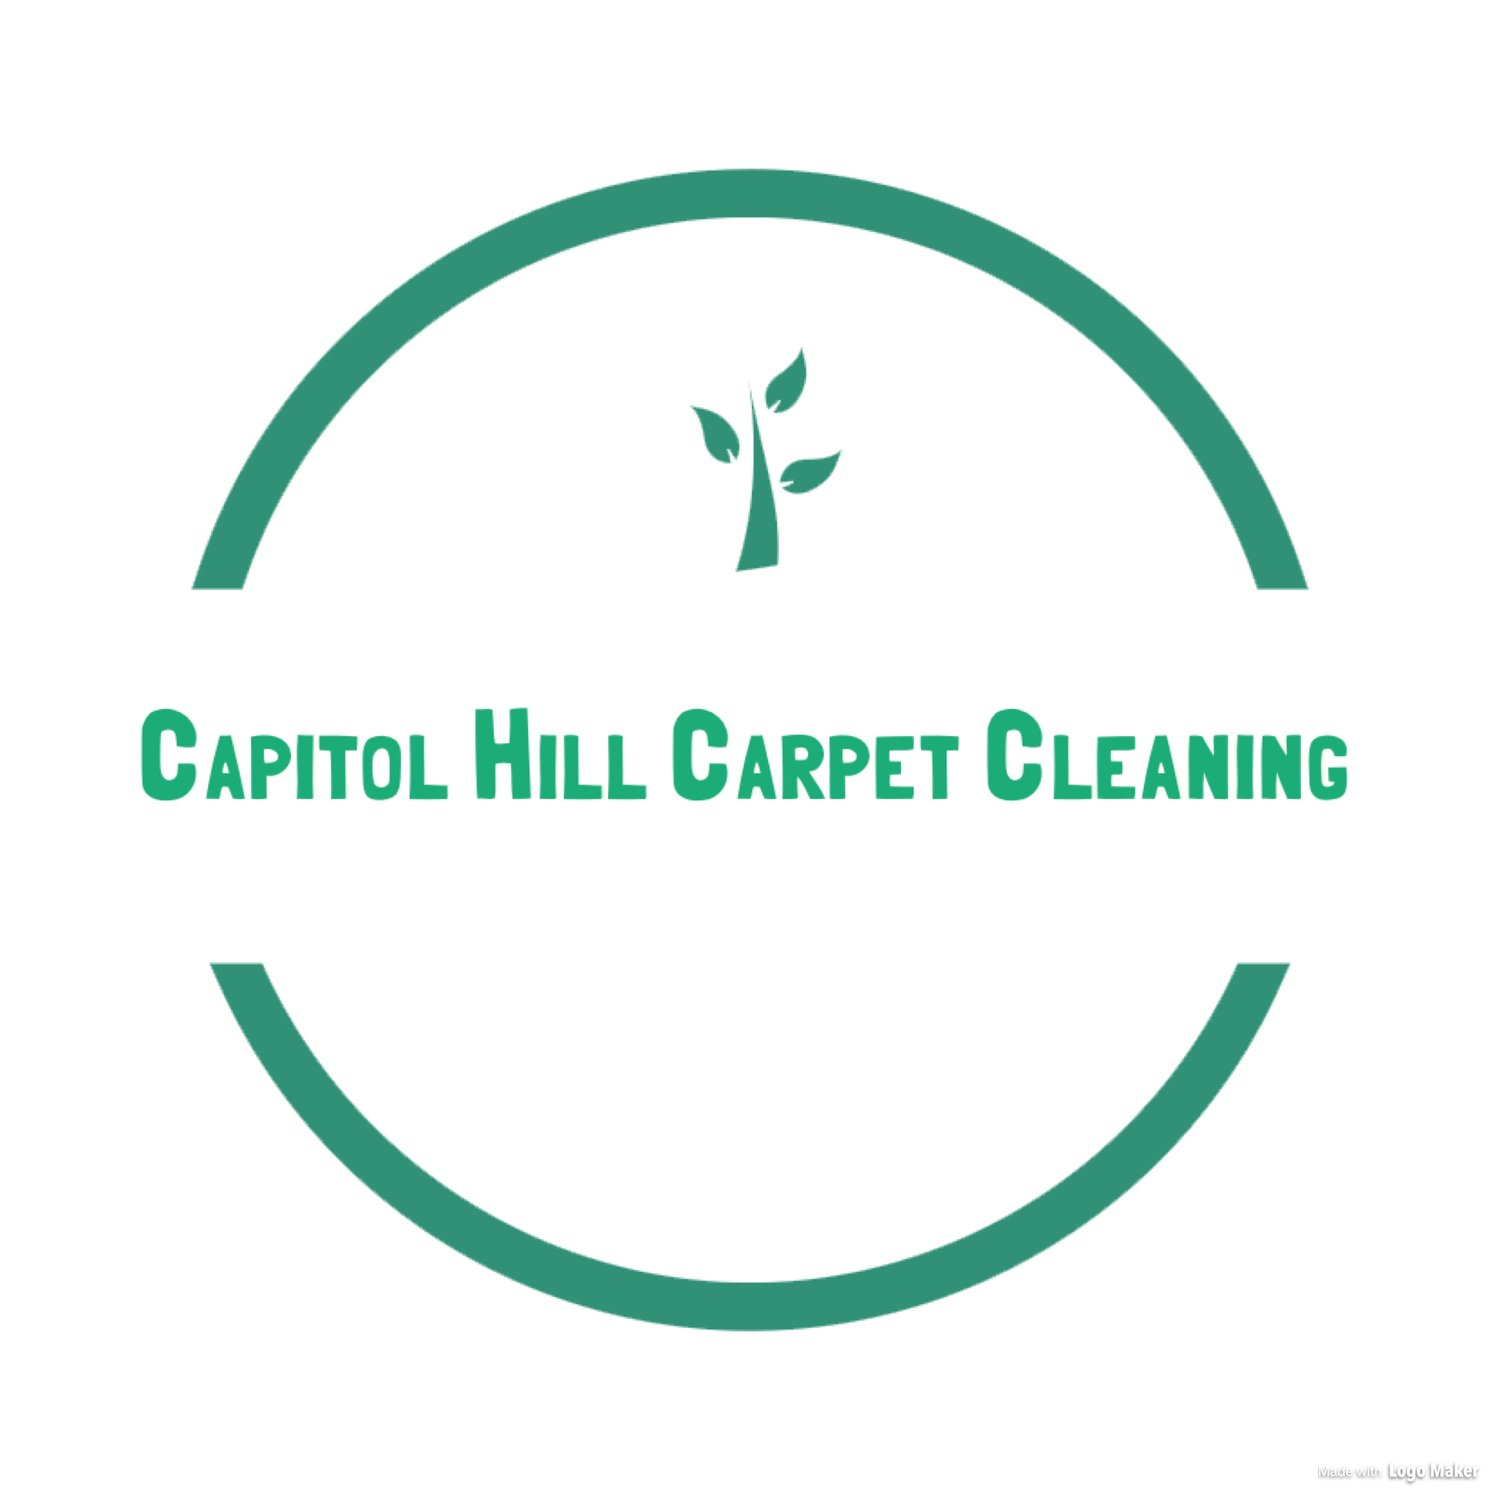 Capital Hill Carpet Cleaning